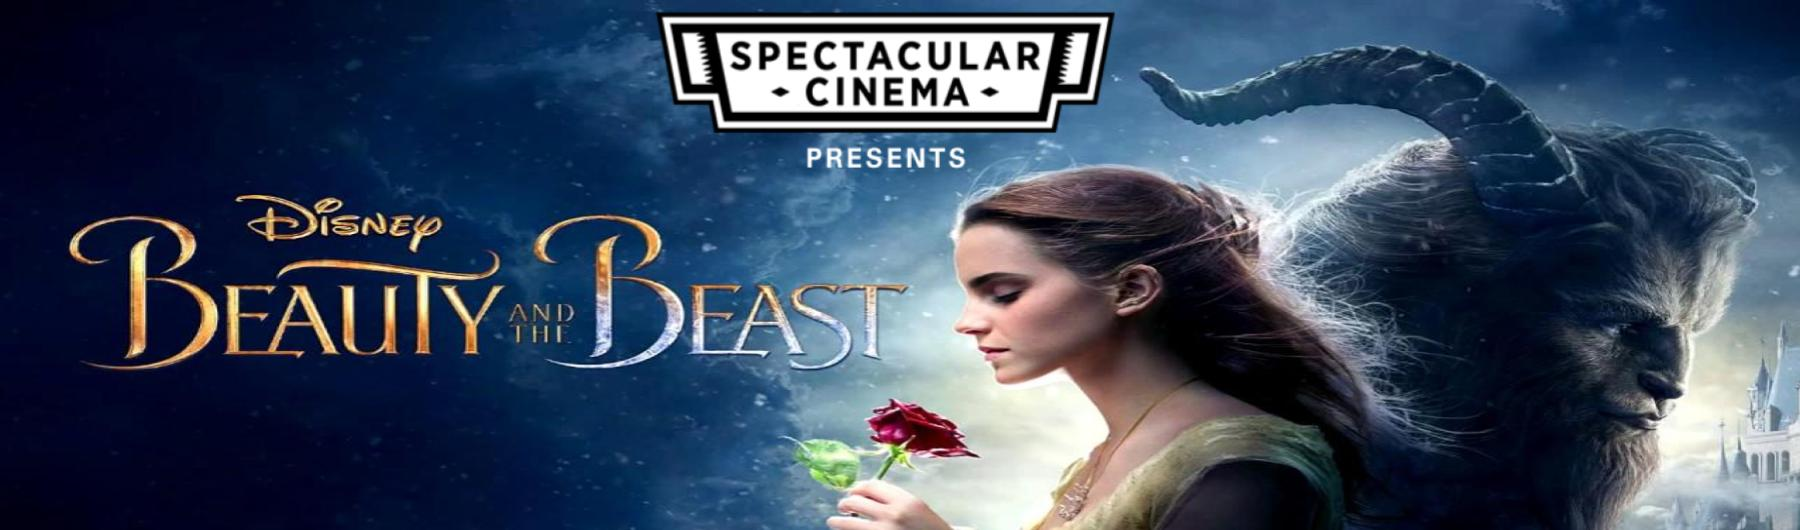 Spectacular Cinema: Beauty and the Beast